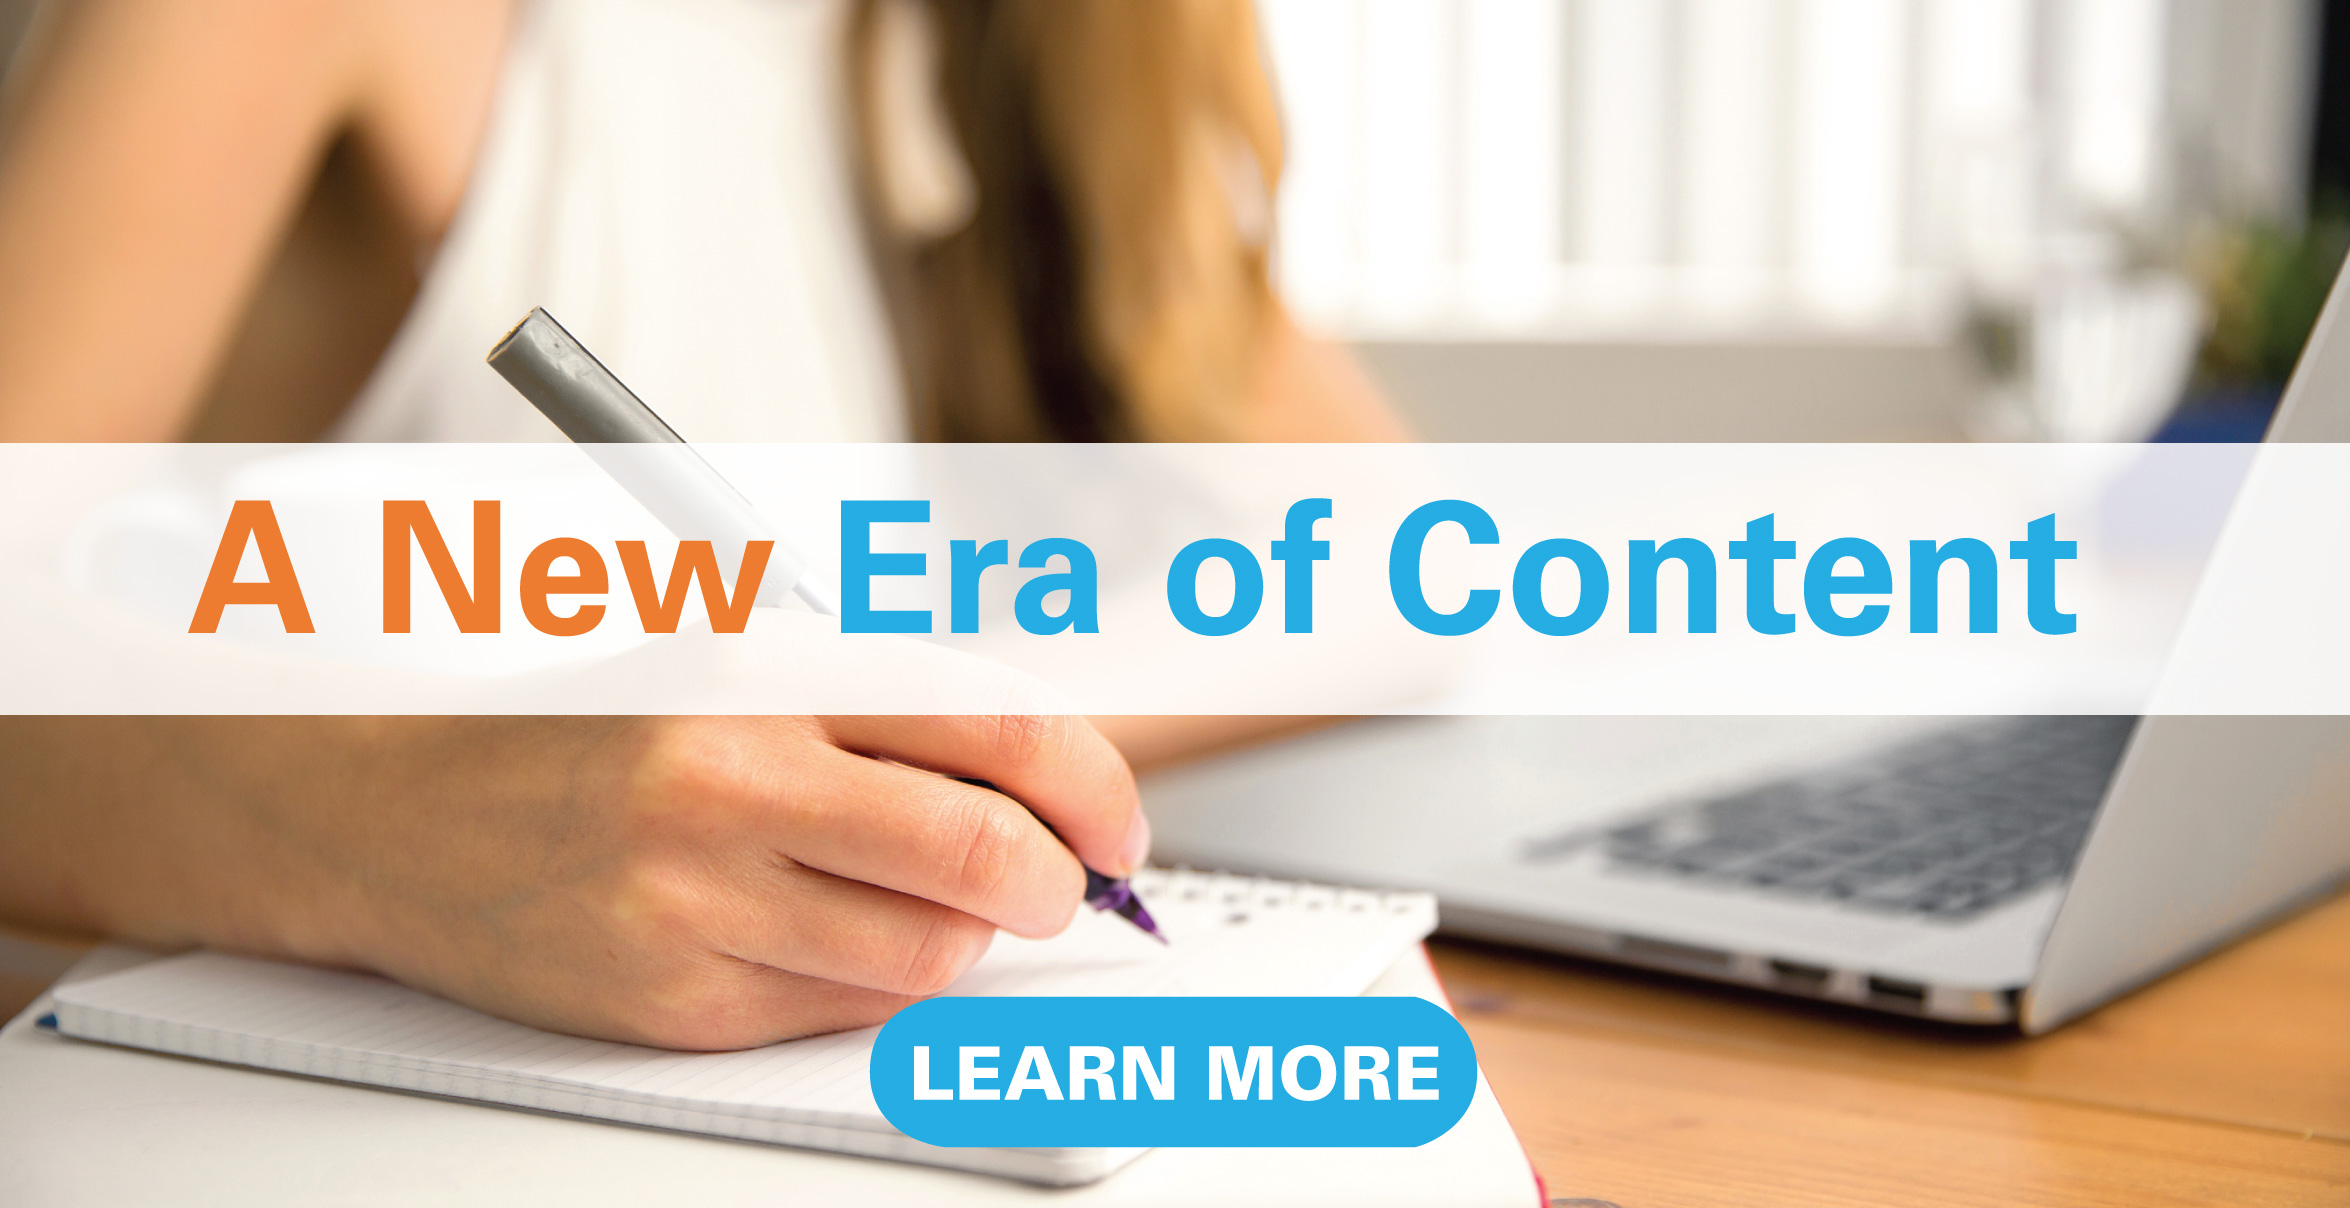 A new era of content white paper